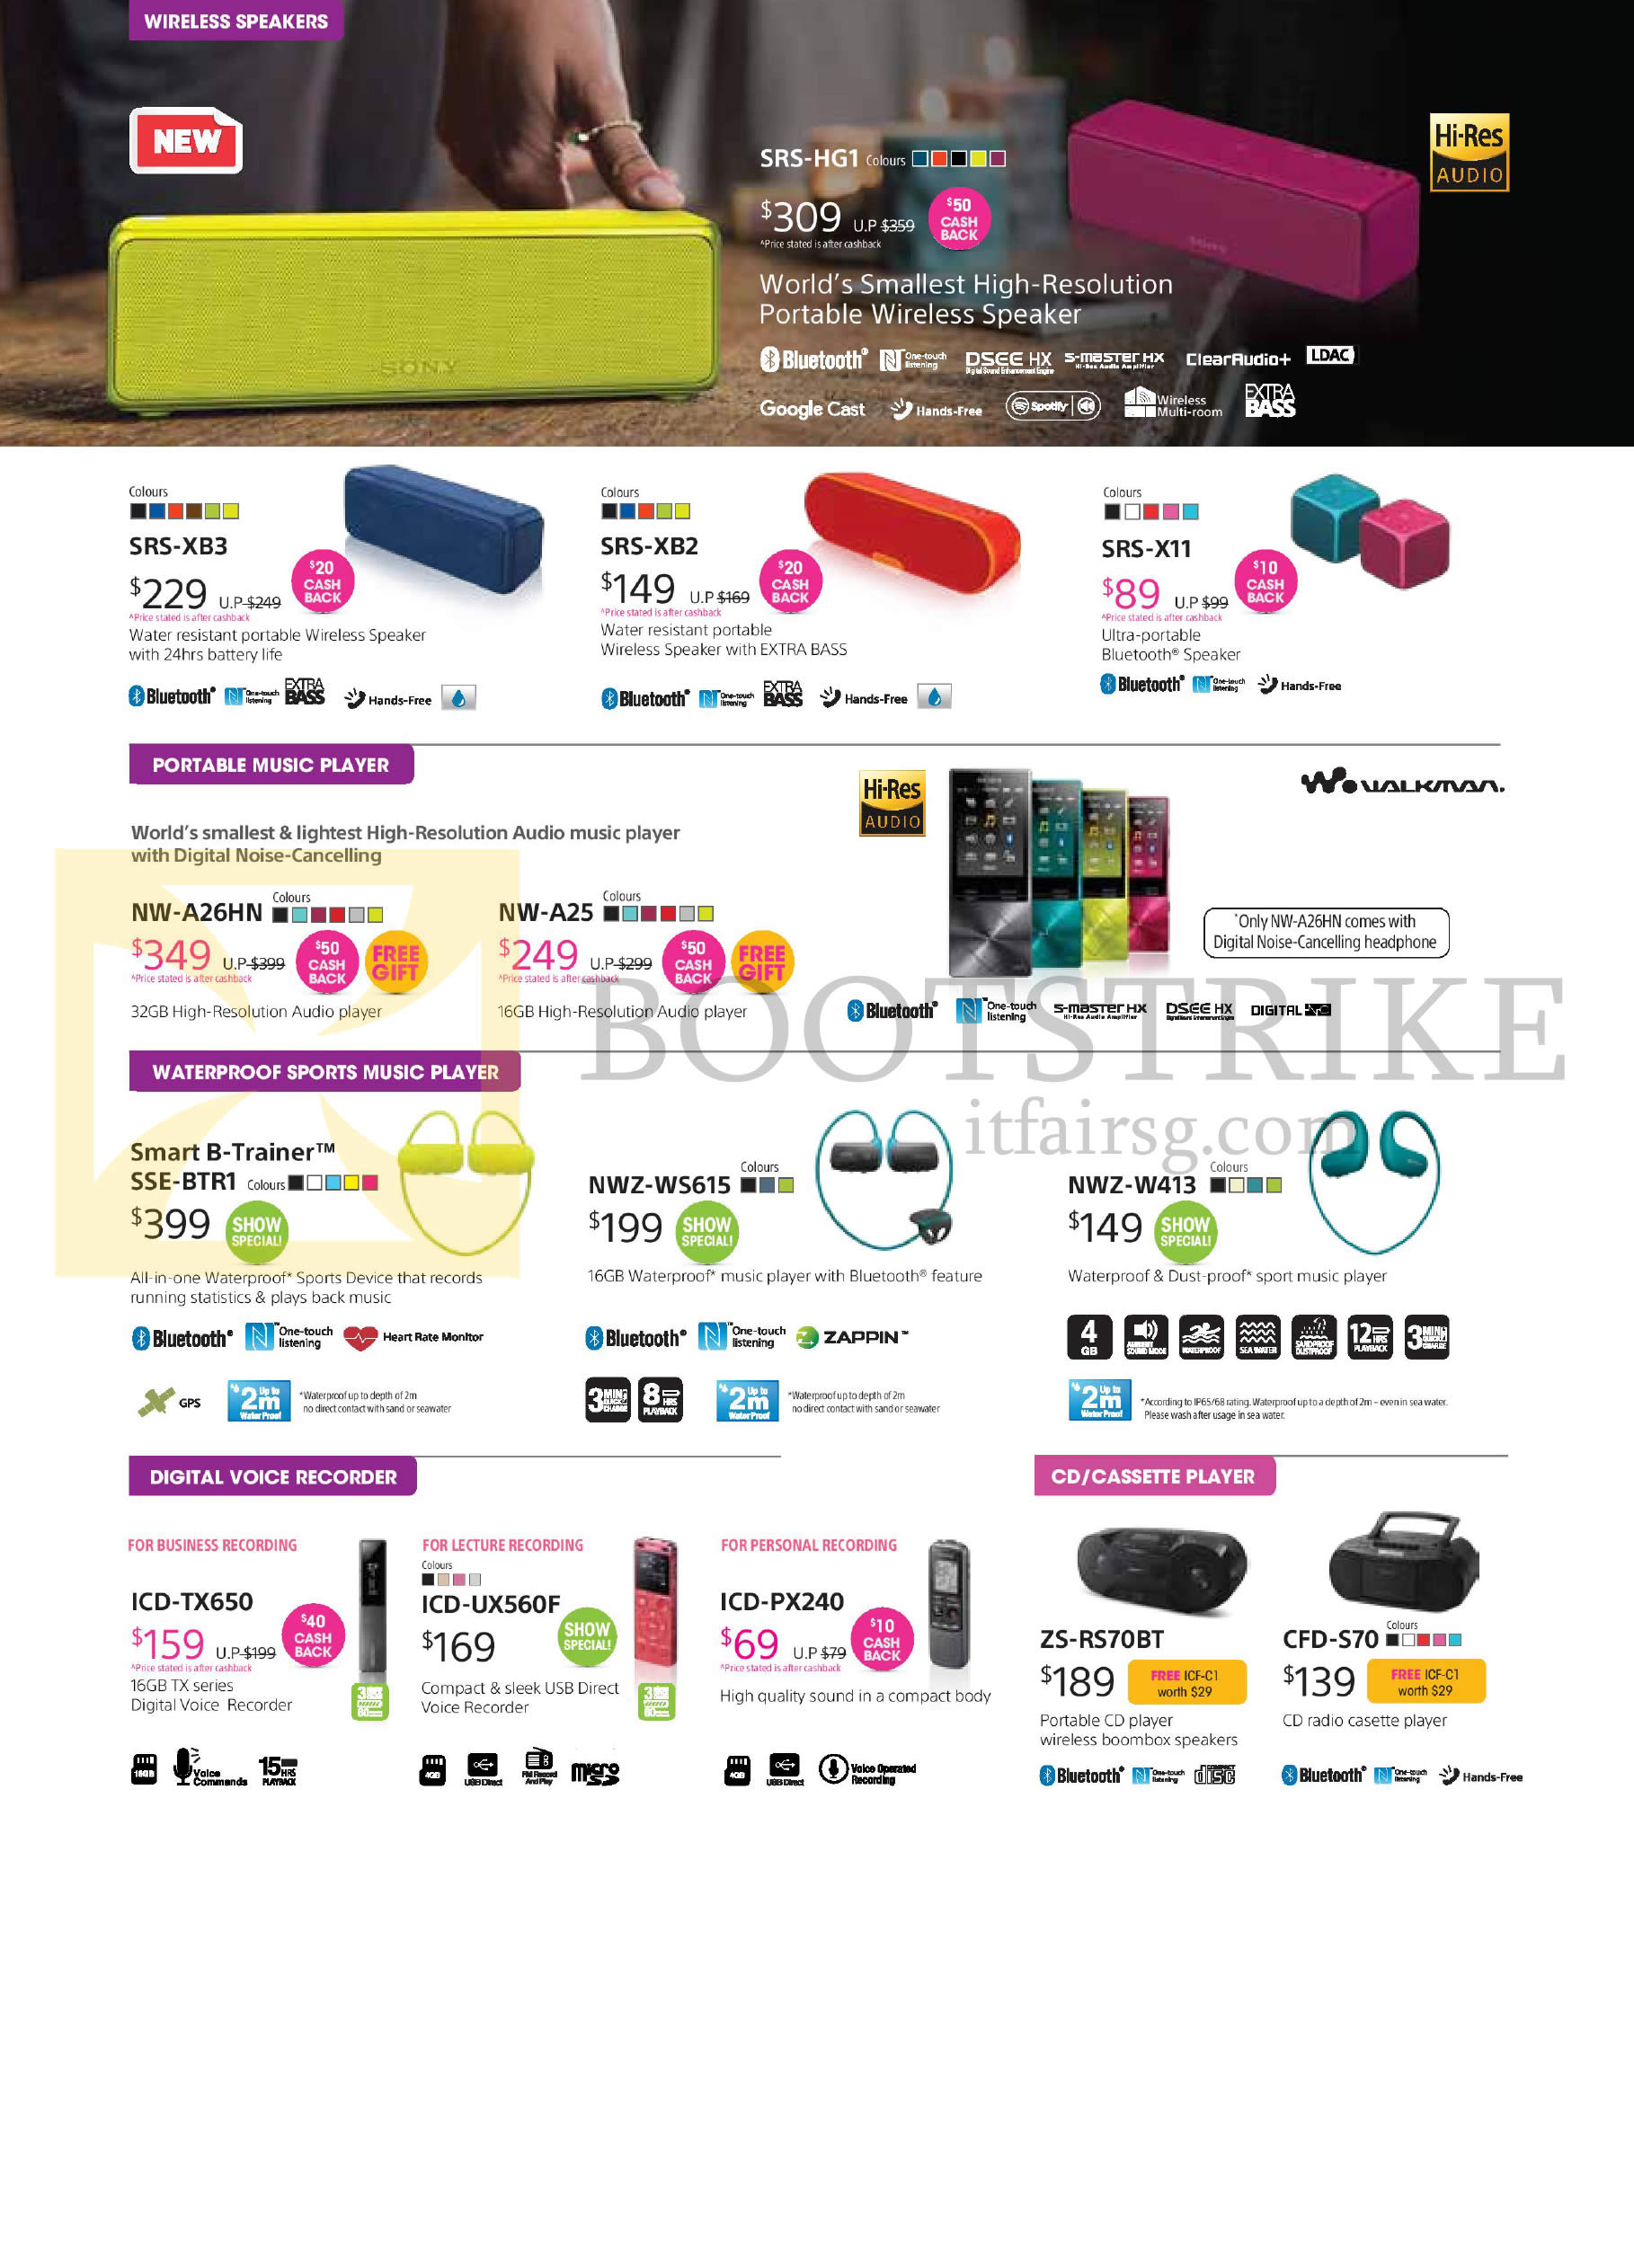 COMEX 2016 price list image brochure of Sony Wireless Speakers, Portable Music Players, Waterproof Sports, Digital Voice Recorder, CD, Cassette Player, SRS-XB3, XB2, X11, NW-A26HN, A25, SSE-BTR1, NWZ-WS615, W413, ICD-TX650